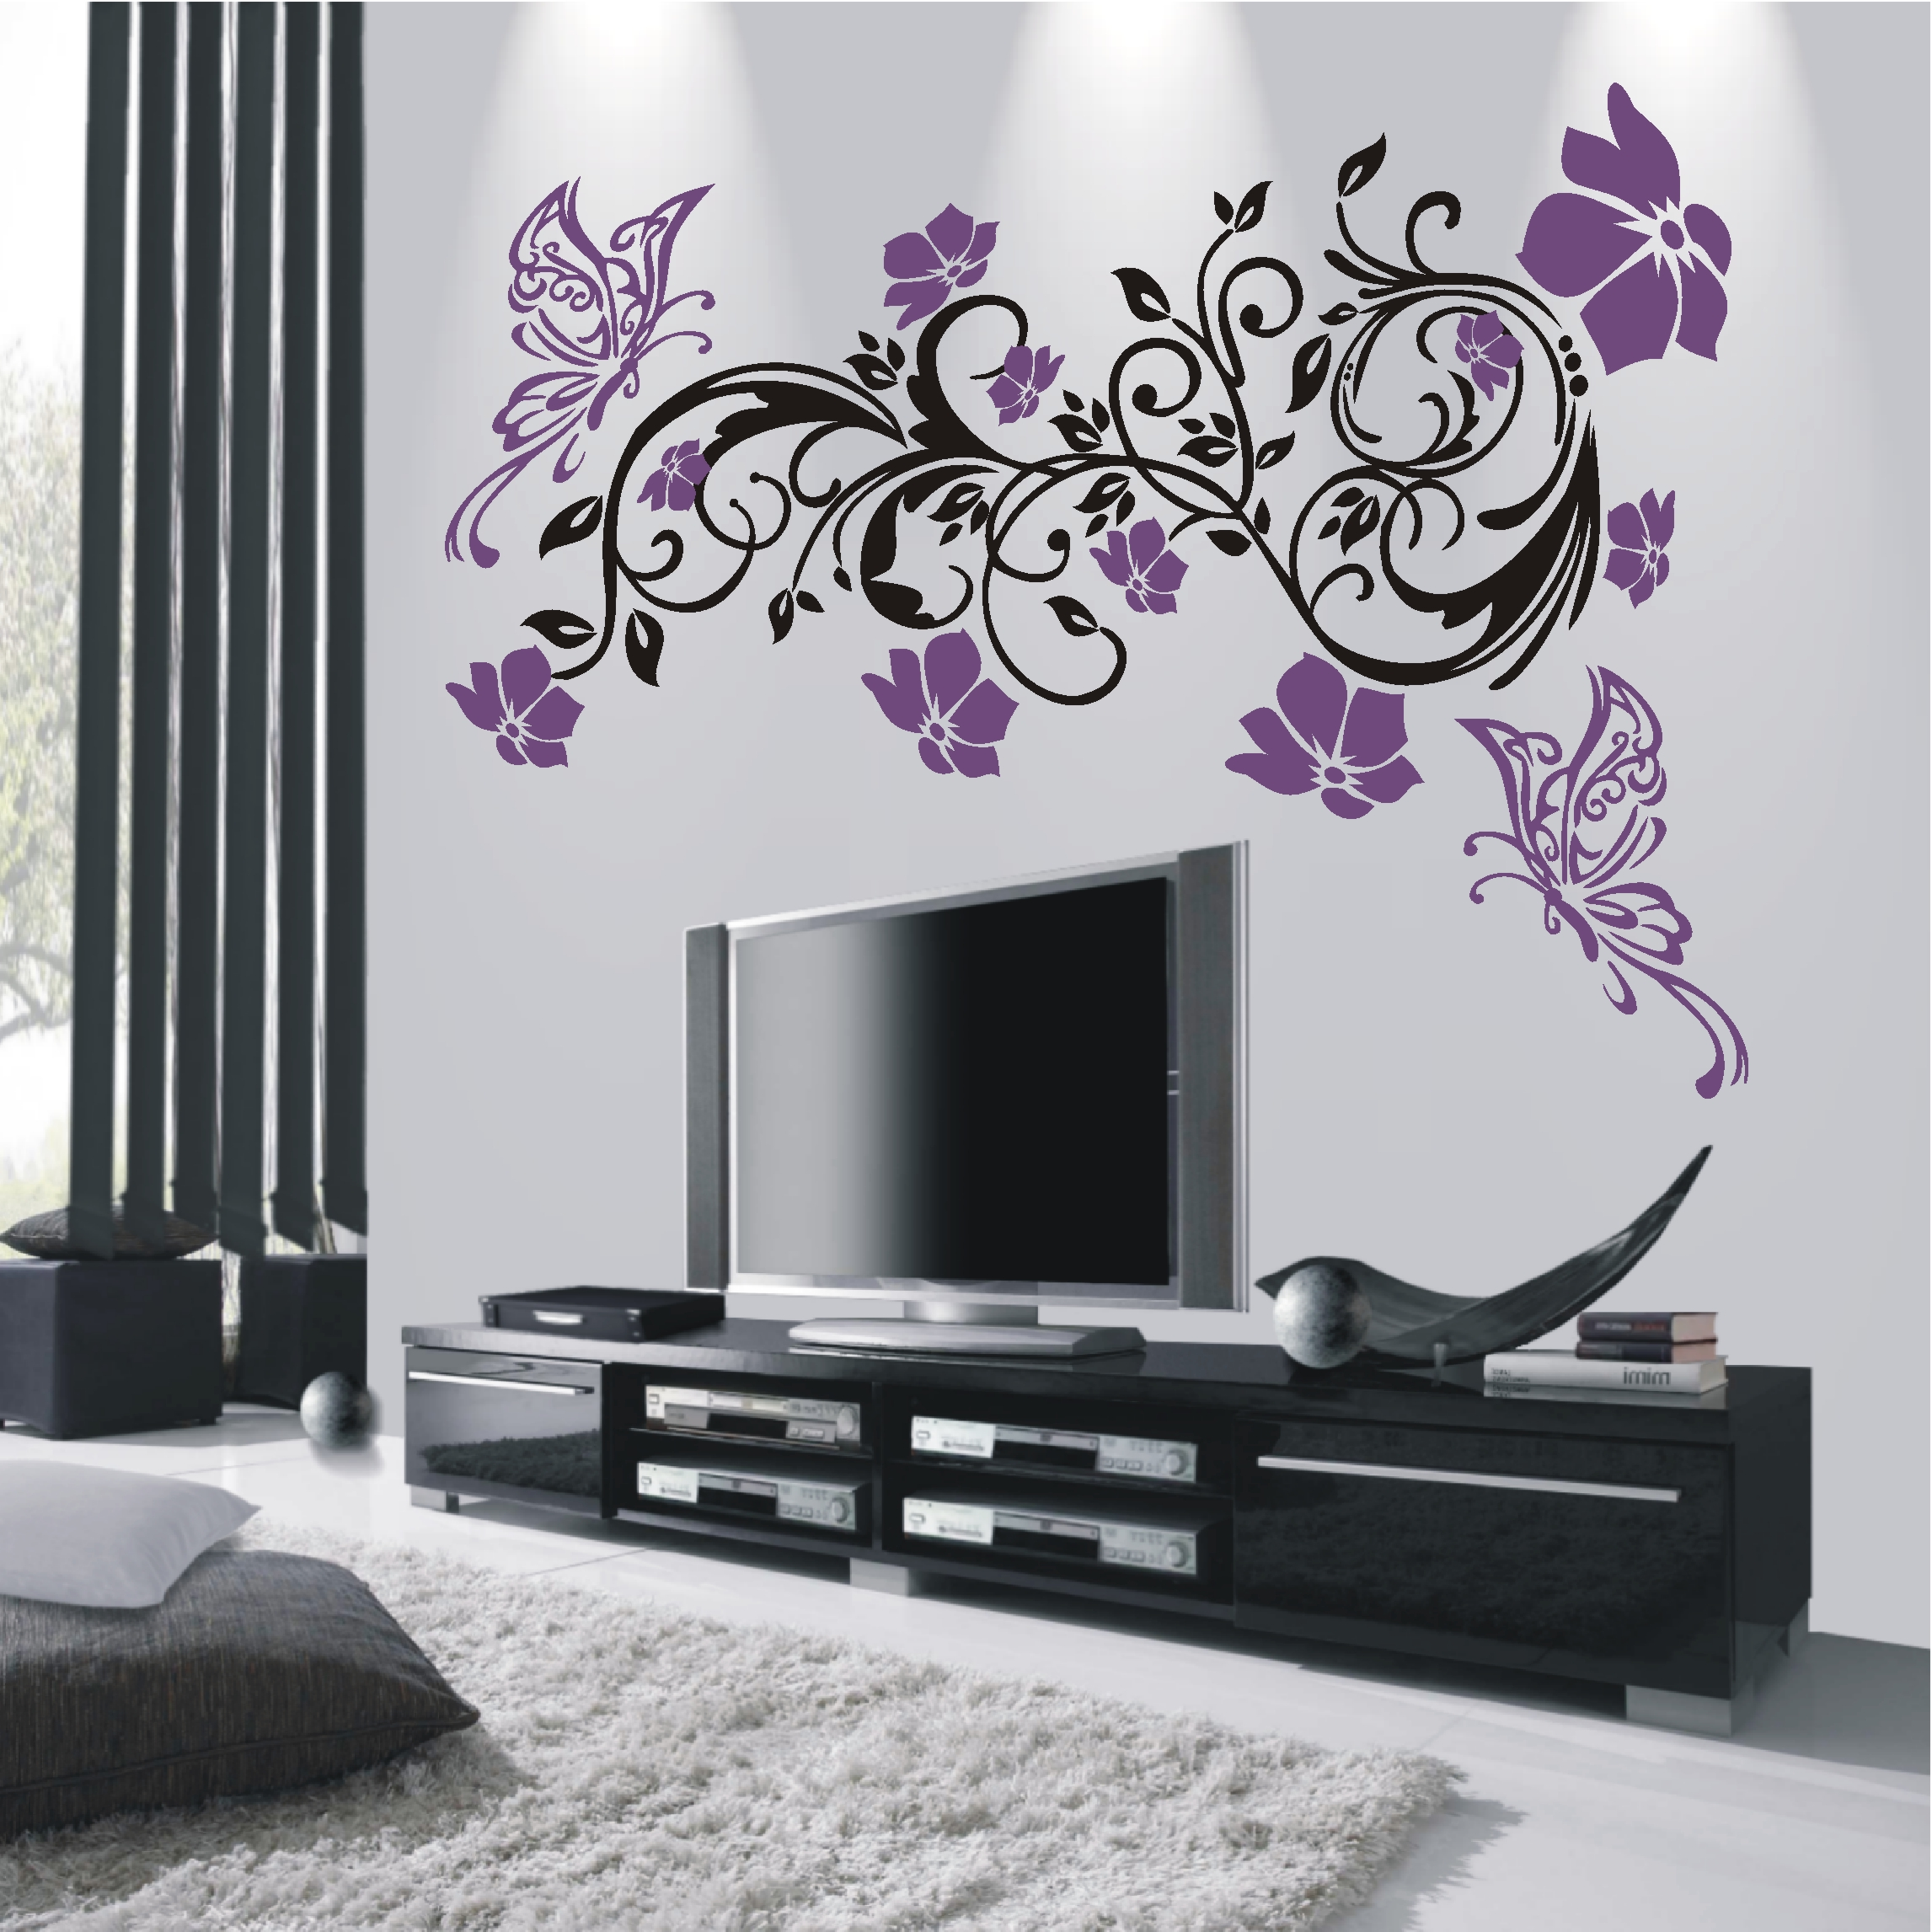 wandtattoo hibiskus ranke reuniecollegenoetsele. Black Bedroom Furniture Sets. Home Design Ideas